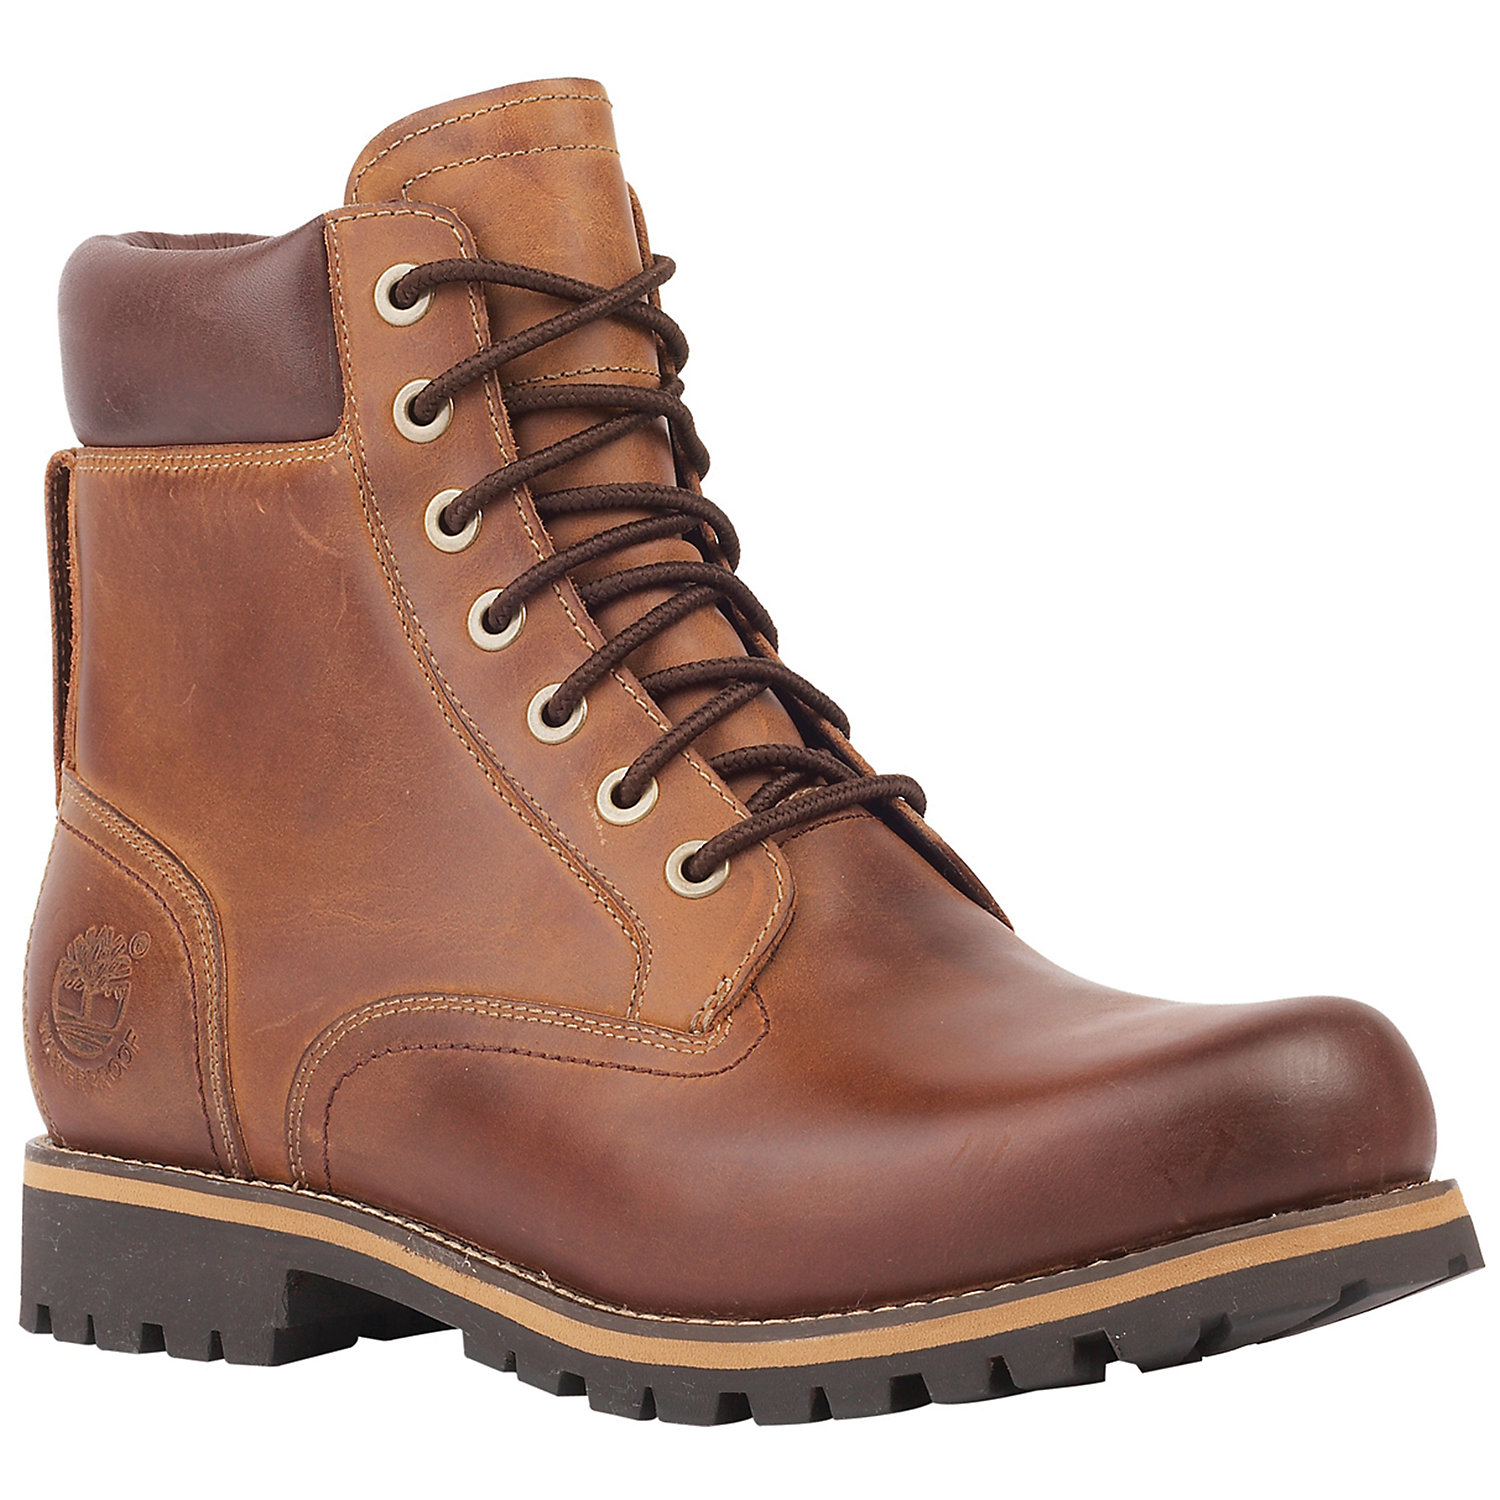 Timberland Men s Timberland Rugged 6 Inch Waterproof Boot - Moosejaw 338c9c033